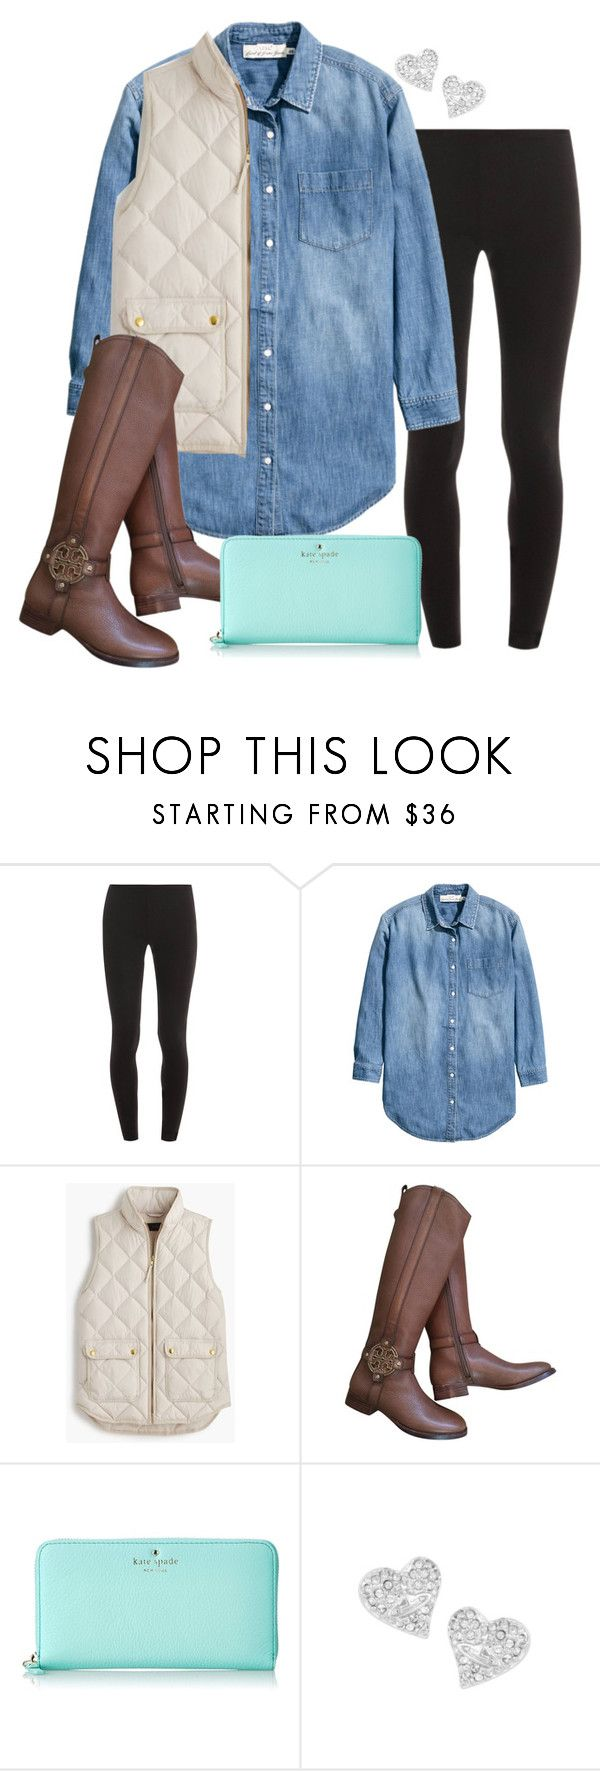 """new tag in d :)"" by madixoxo21 ❤ liked on Polyvore featuring moda, Splendid, H&M, J.Crew, Tory Burch, Kate Spade, Vivienne Westwood, women's clothing, women e female"